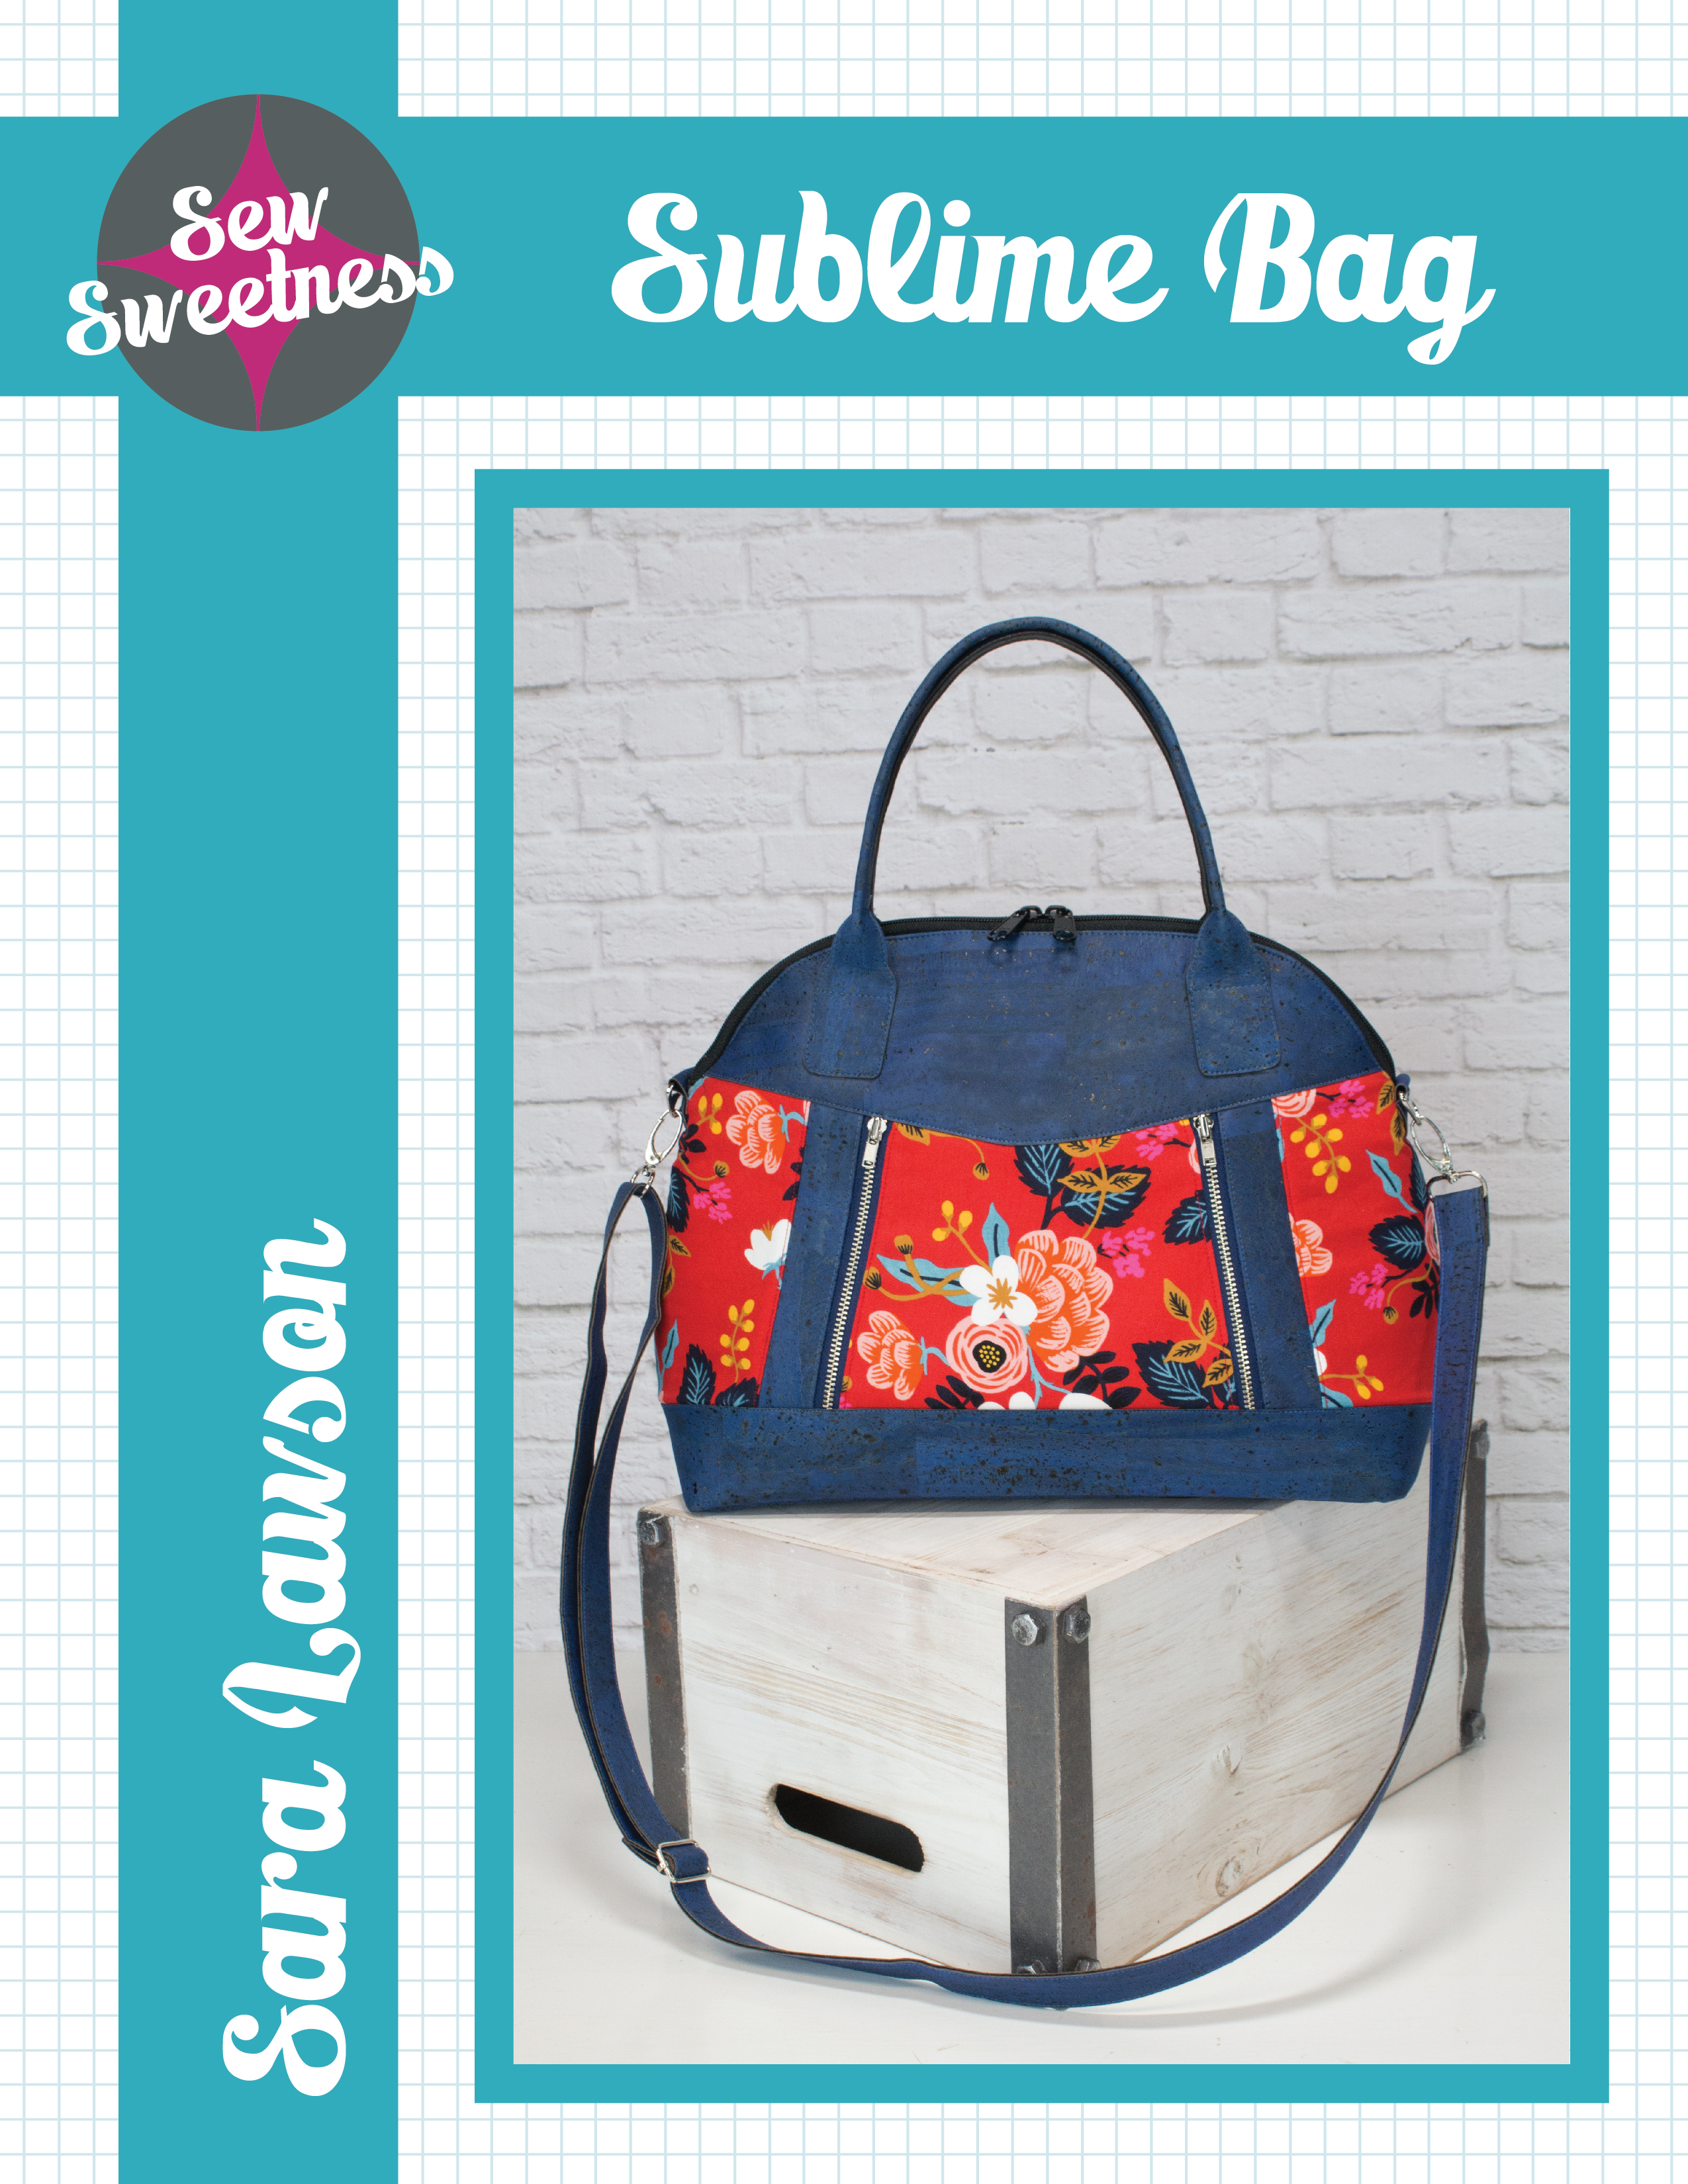 Sew Sweetness Sublime Bag sewing pattern